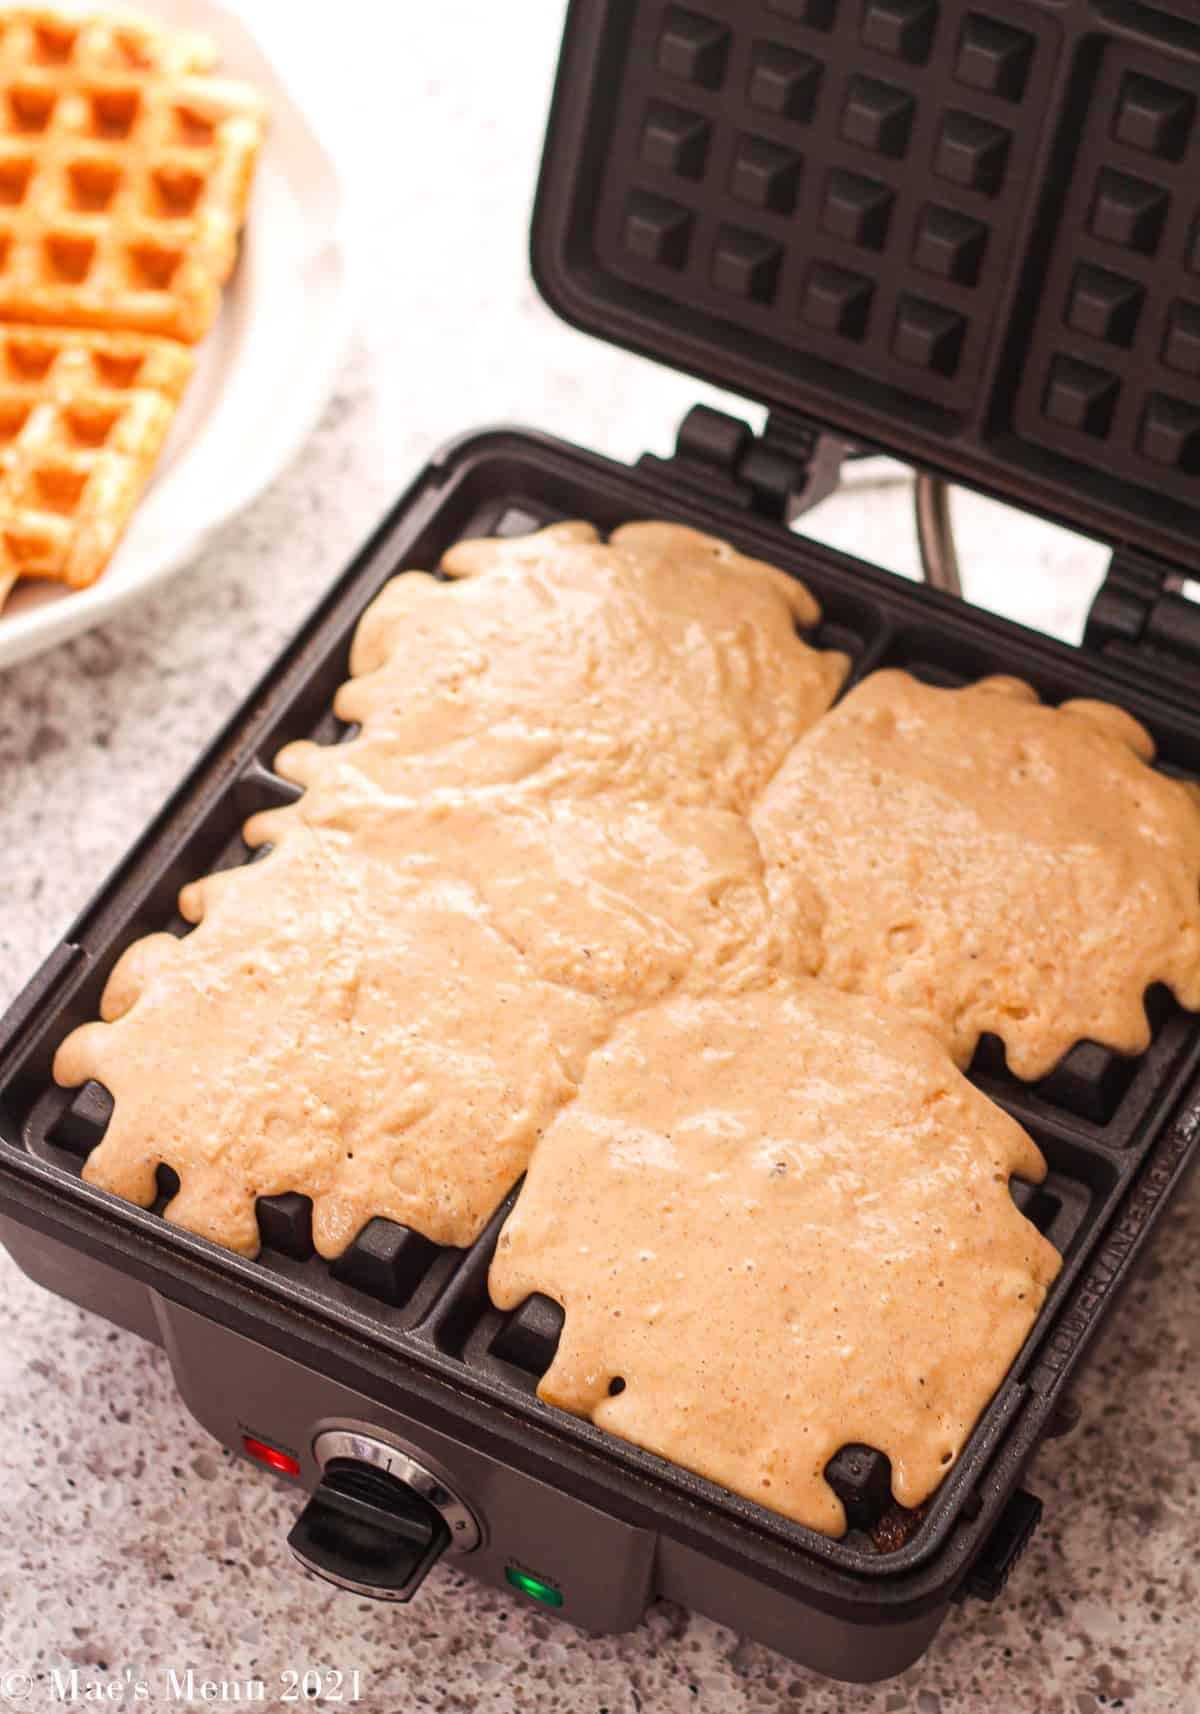 An overhead shot of a waffle iron full of batter with a waffle in the background